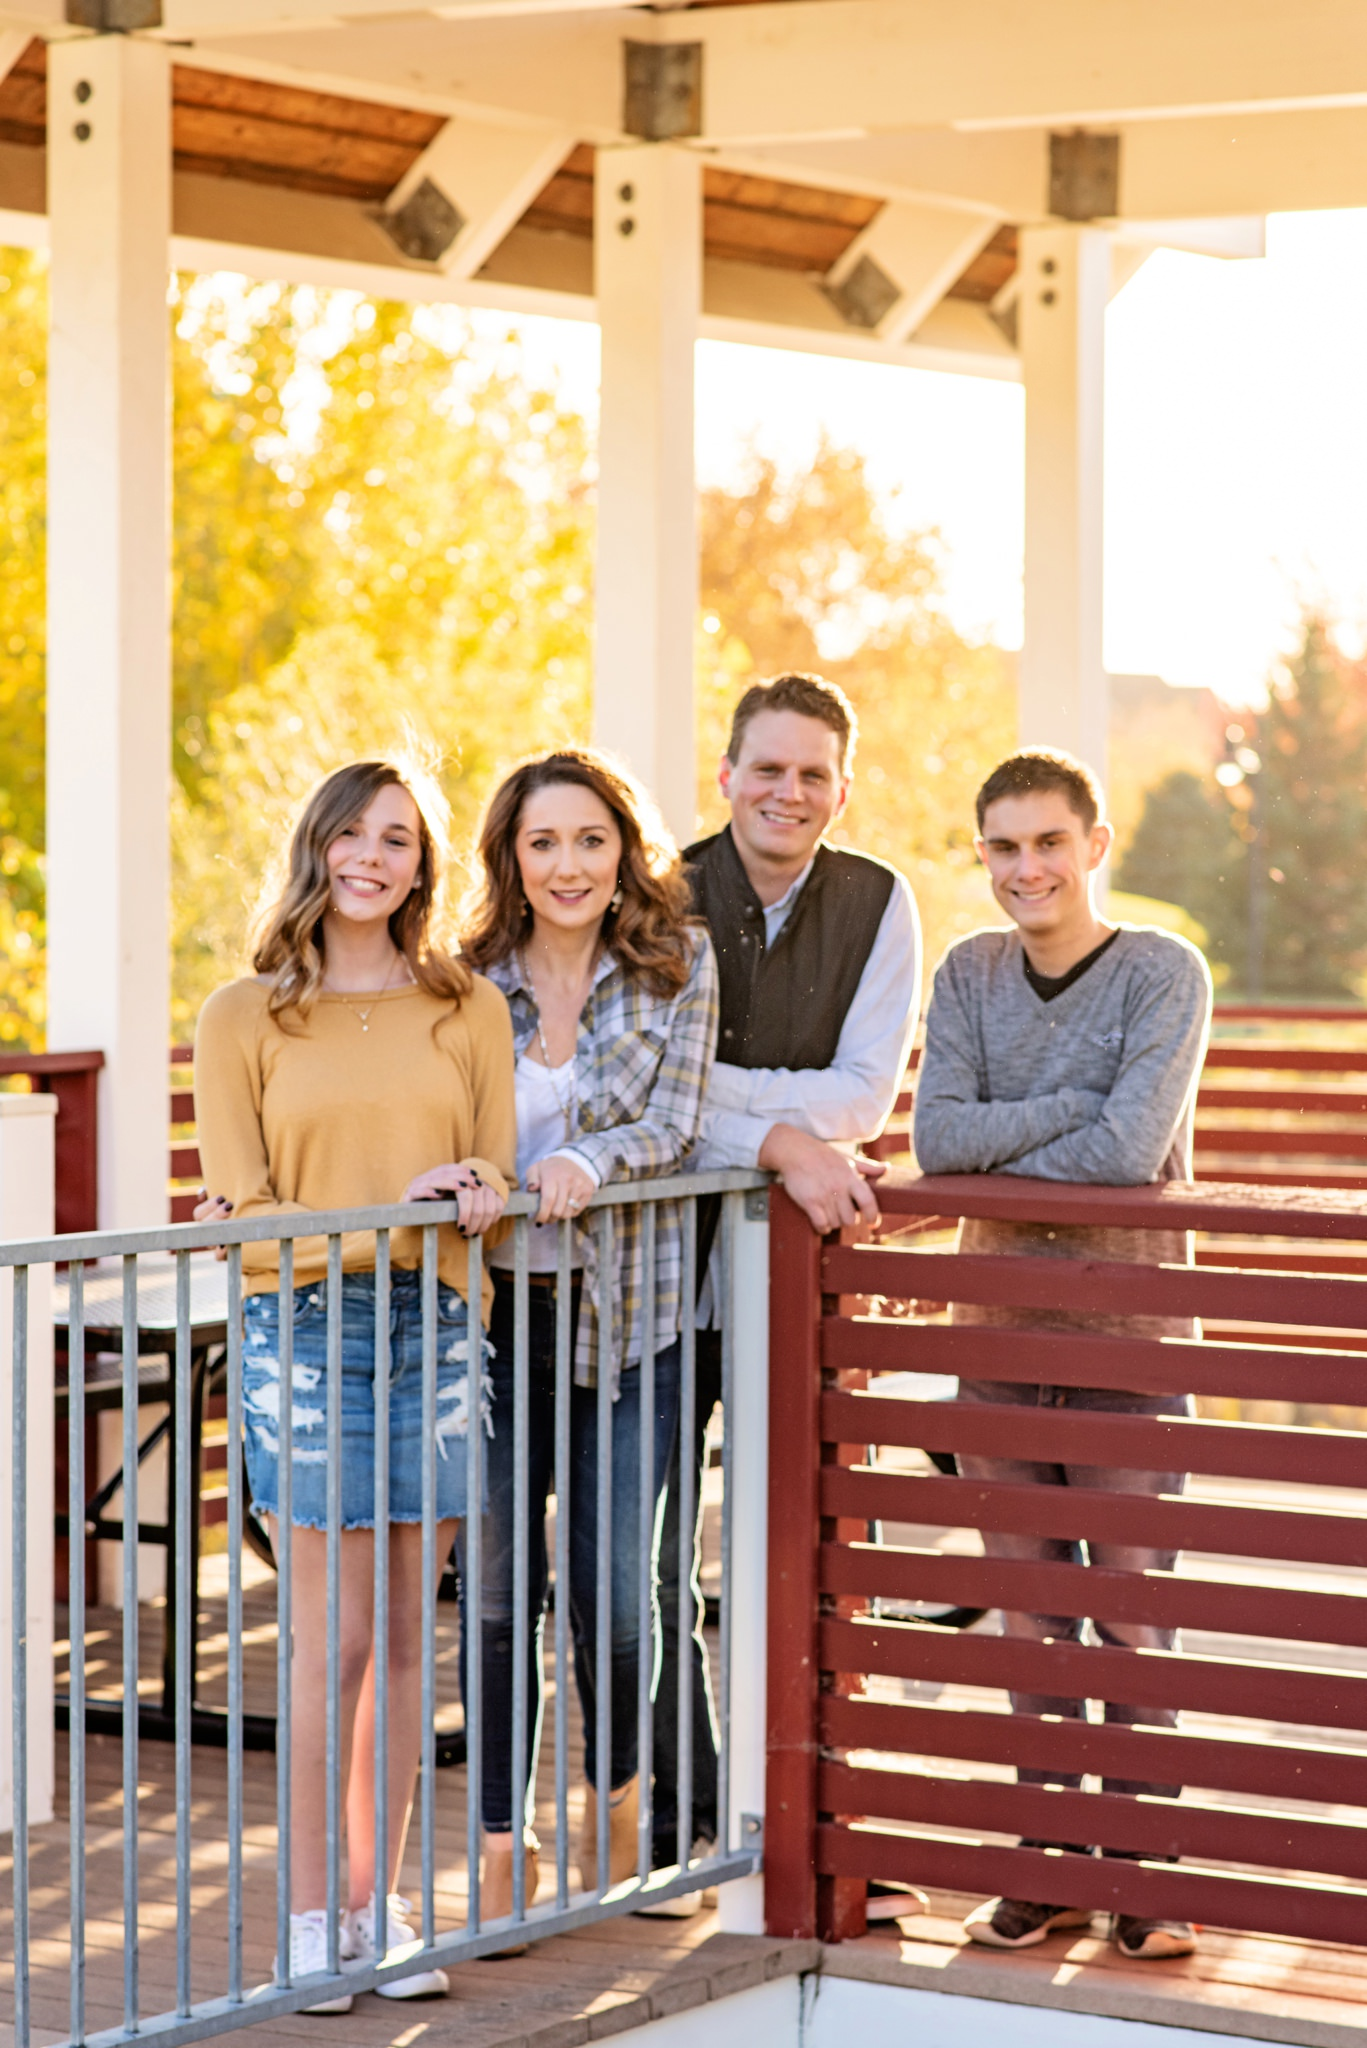 Wittwer-Family-Rotella-Photography-2018-2_WEB.jpg